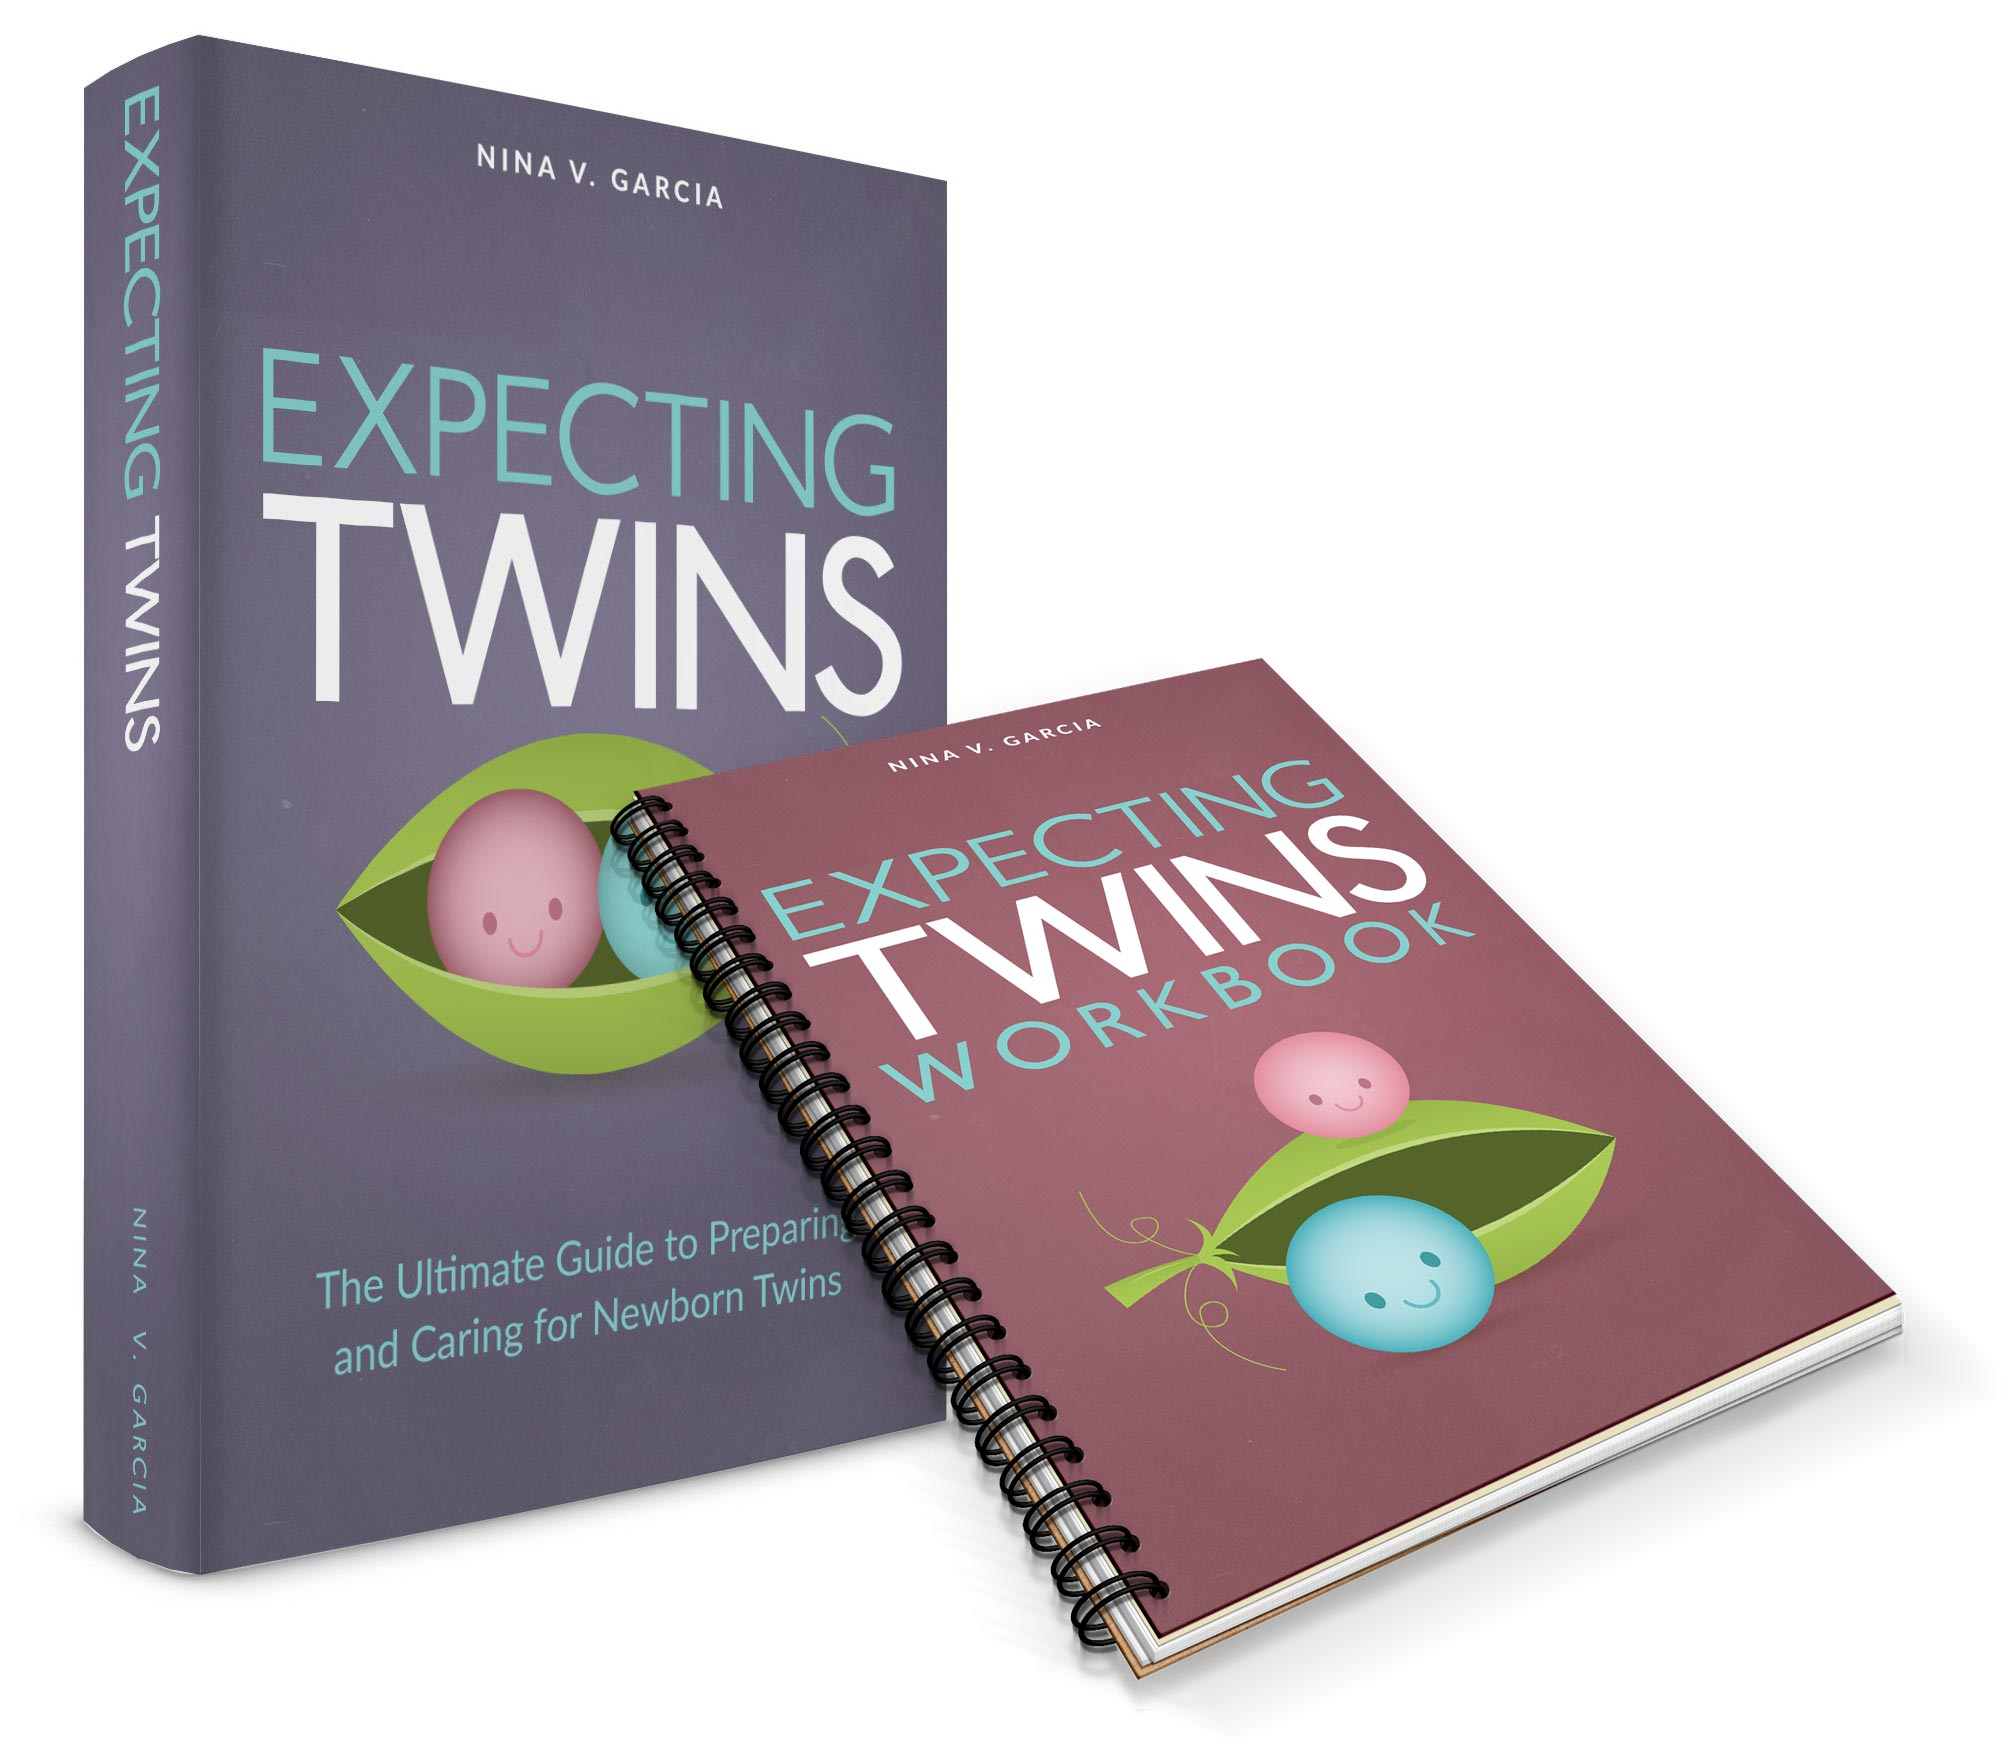 Guide and workbook on expecting twins